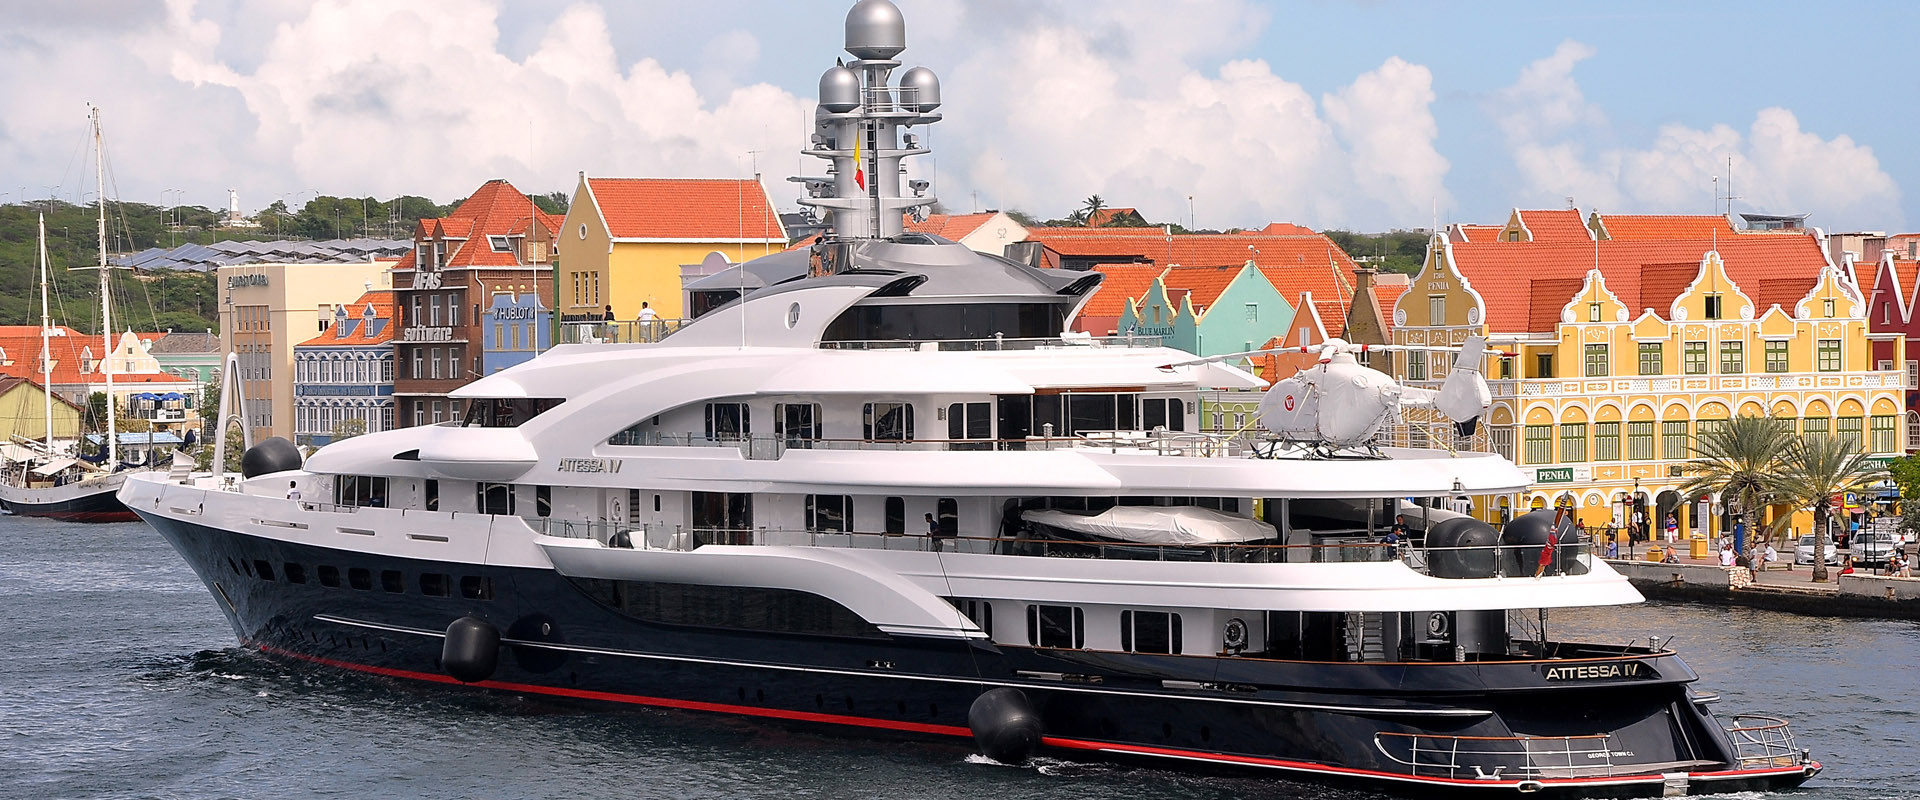 Curaçao Yachting Industry to be further developed